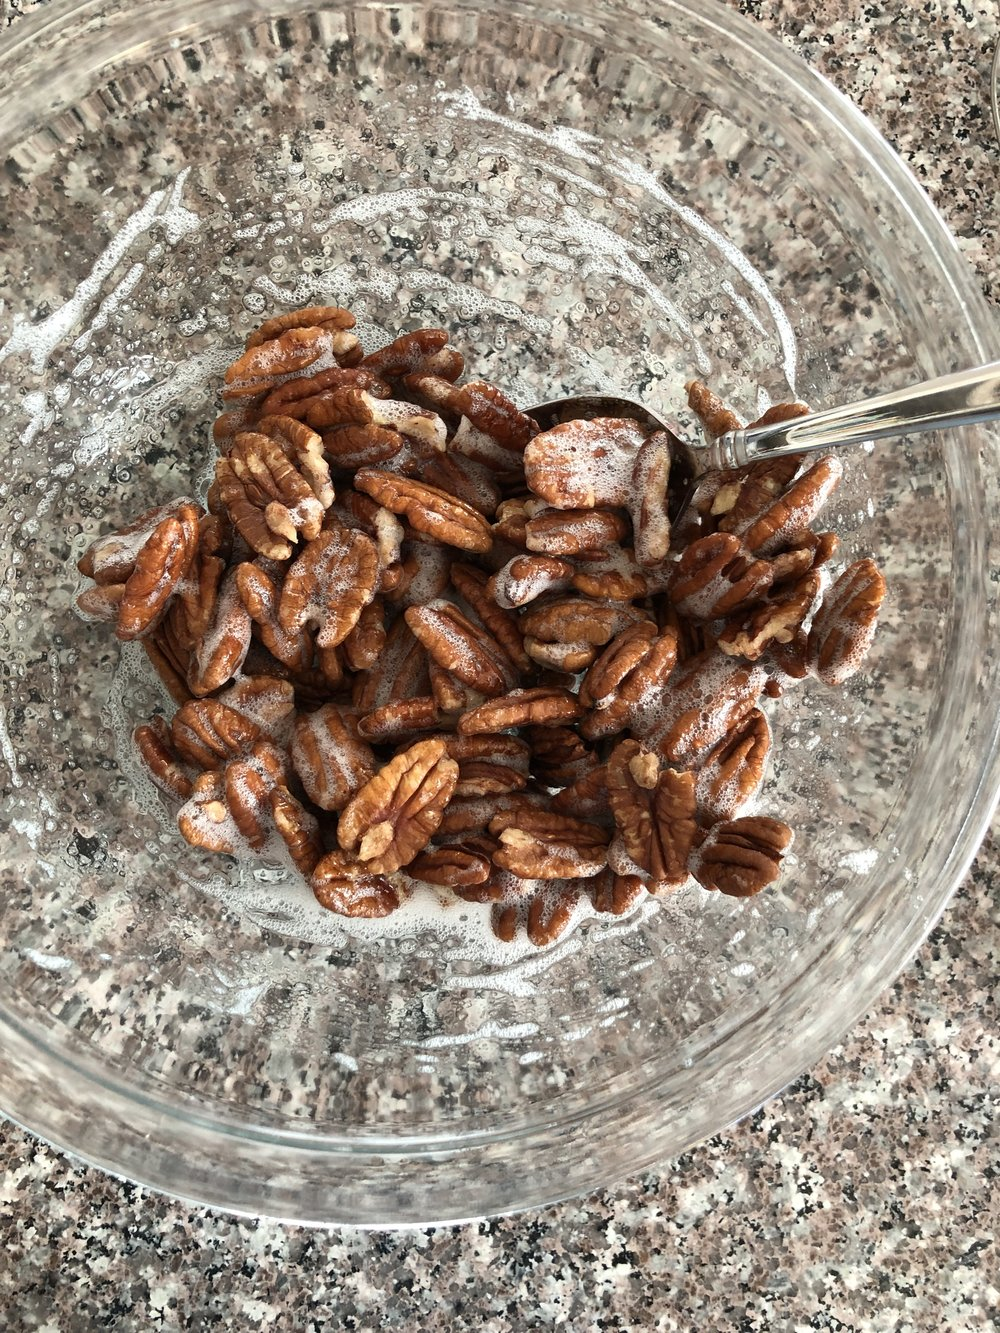 egg whites on pecans.jpg